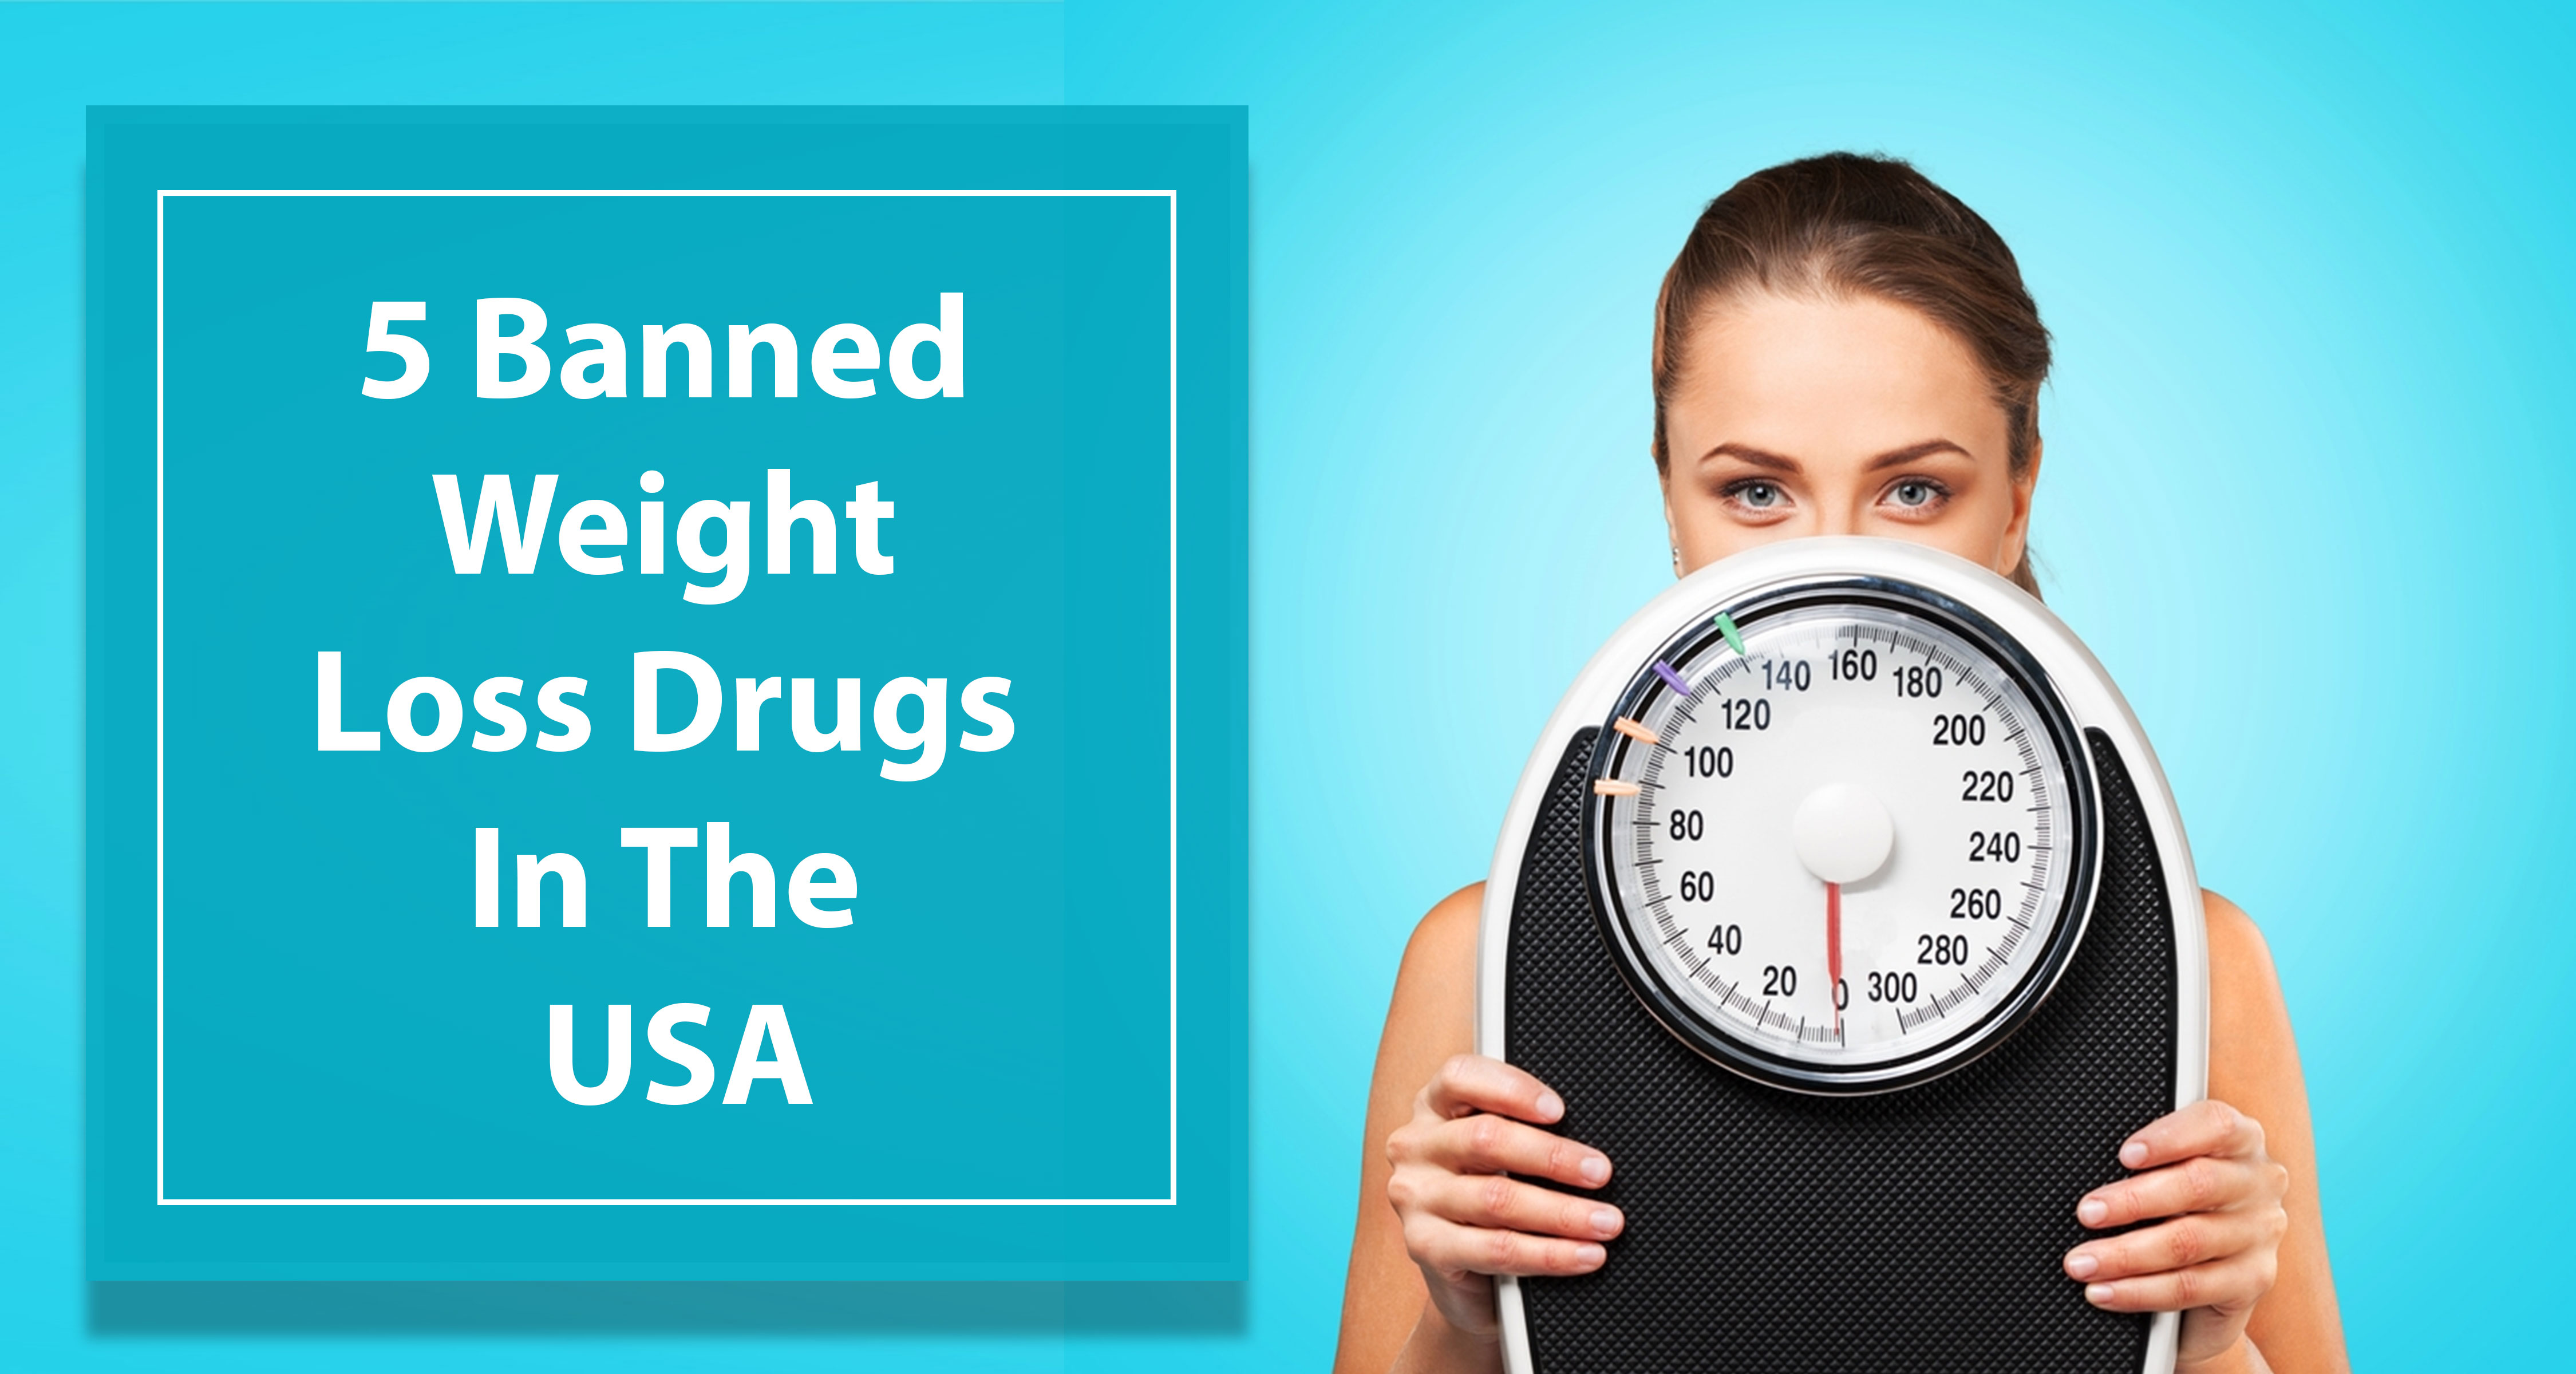 5 Banned Weight Loss Drugs In The USA - Harmful Effects Of